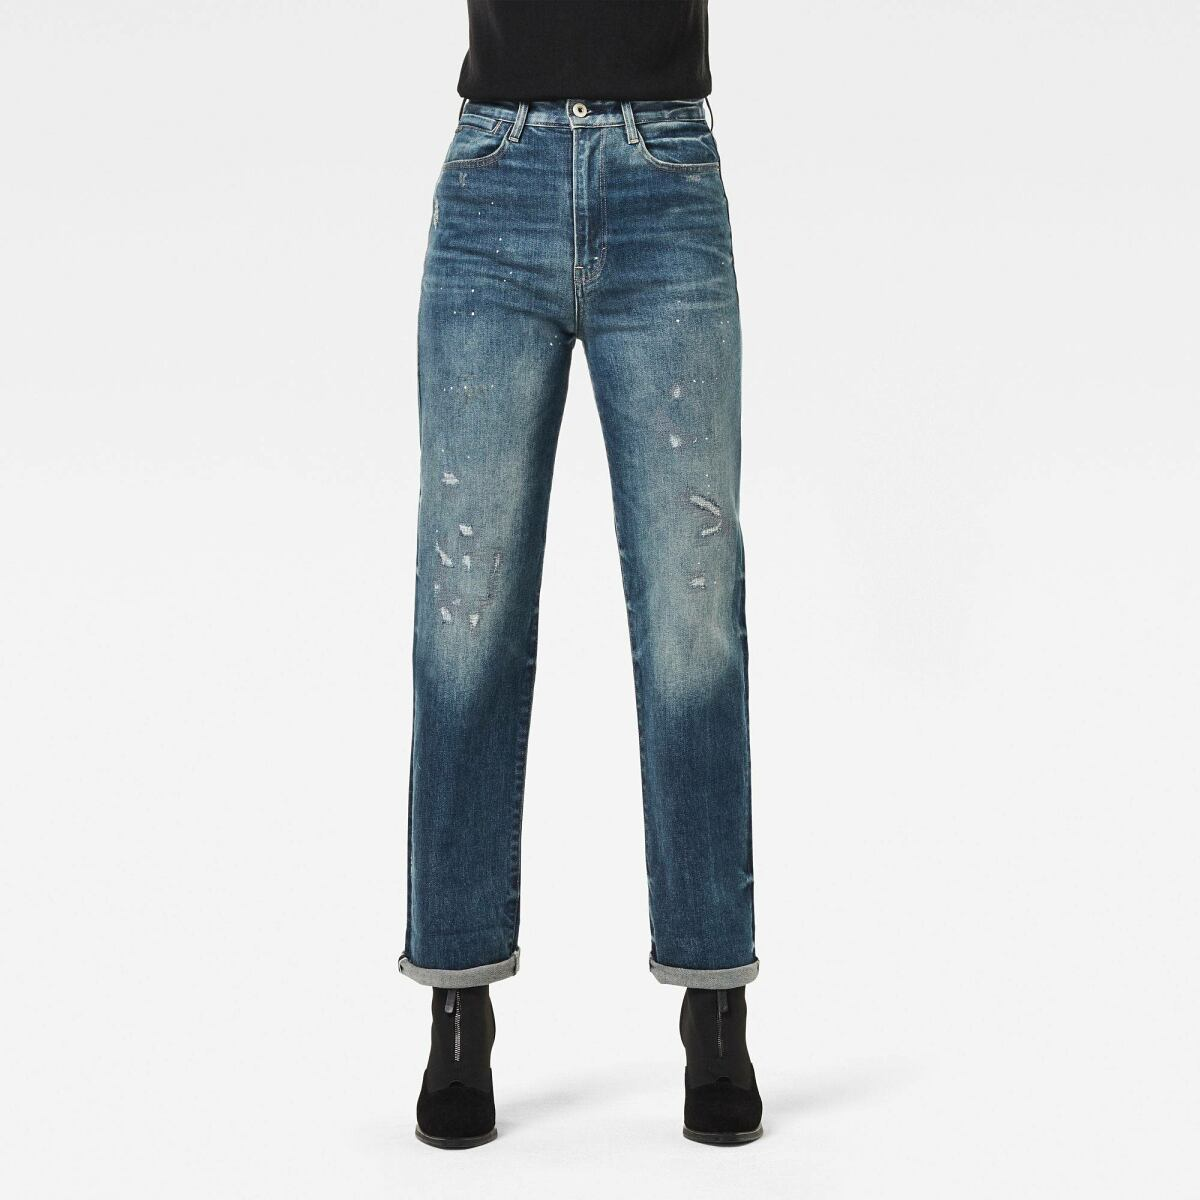 Medium blue Woman Jeans Tedie Ultra High Straight Turn Up Ankle Jeans G-Star WOMEN